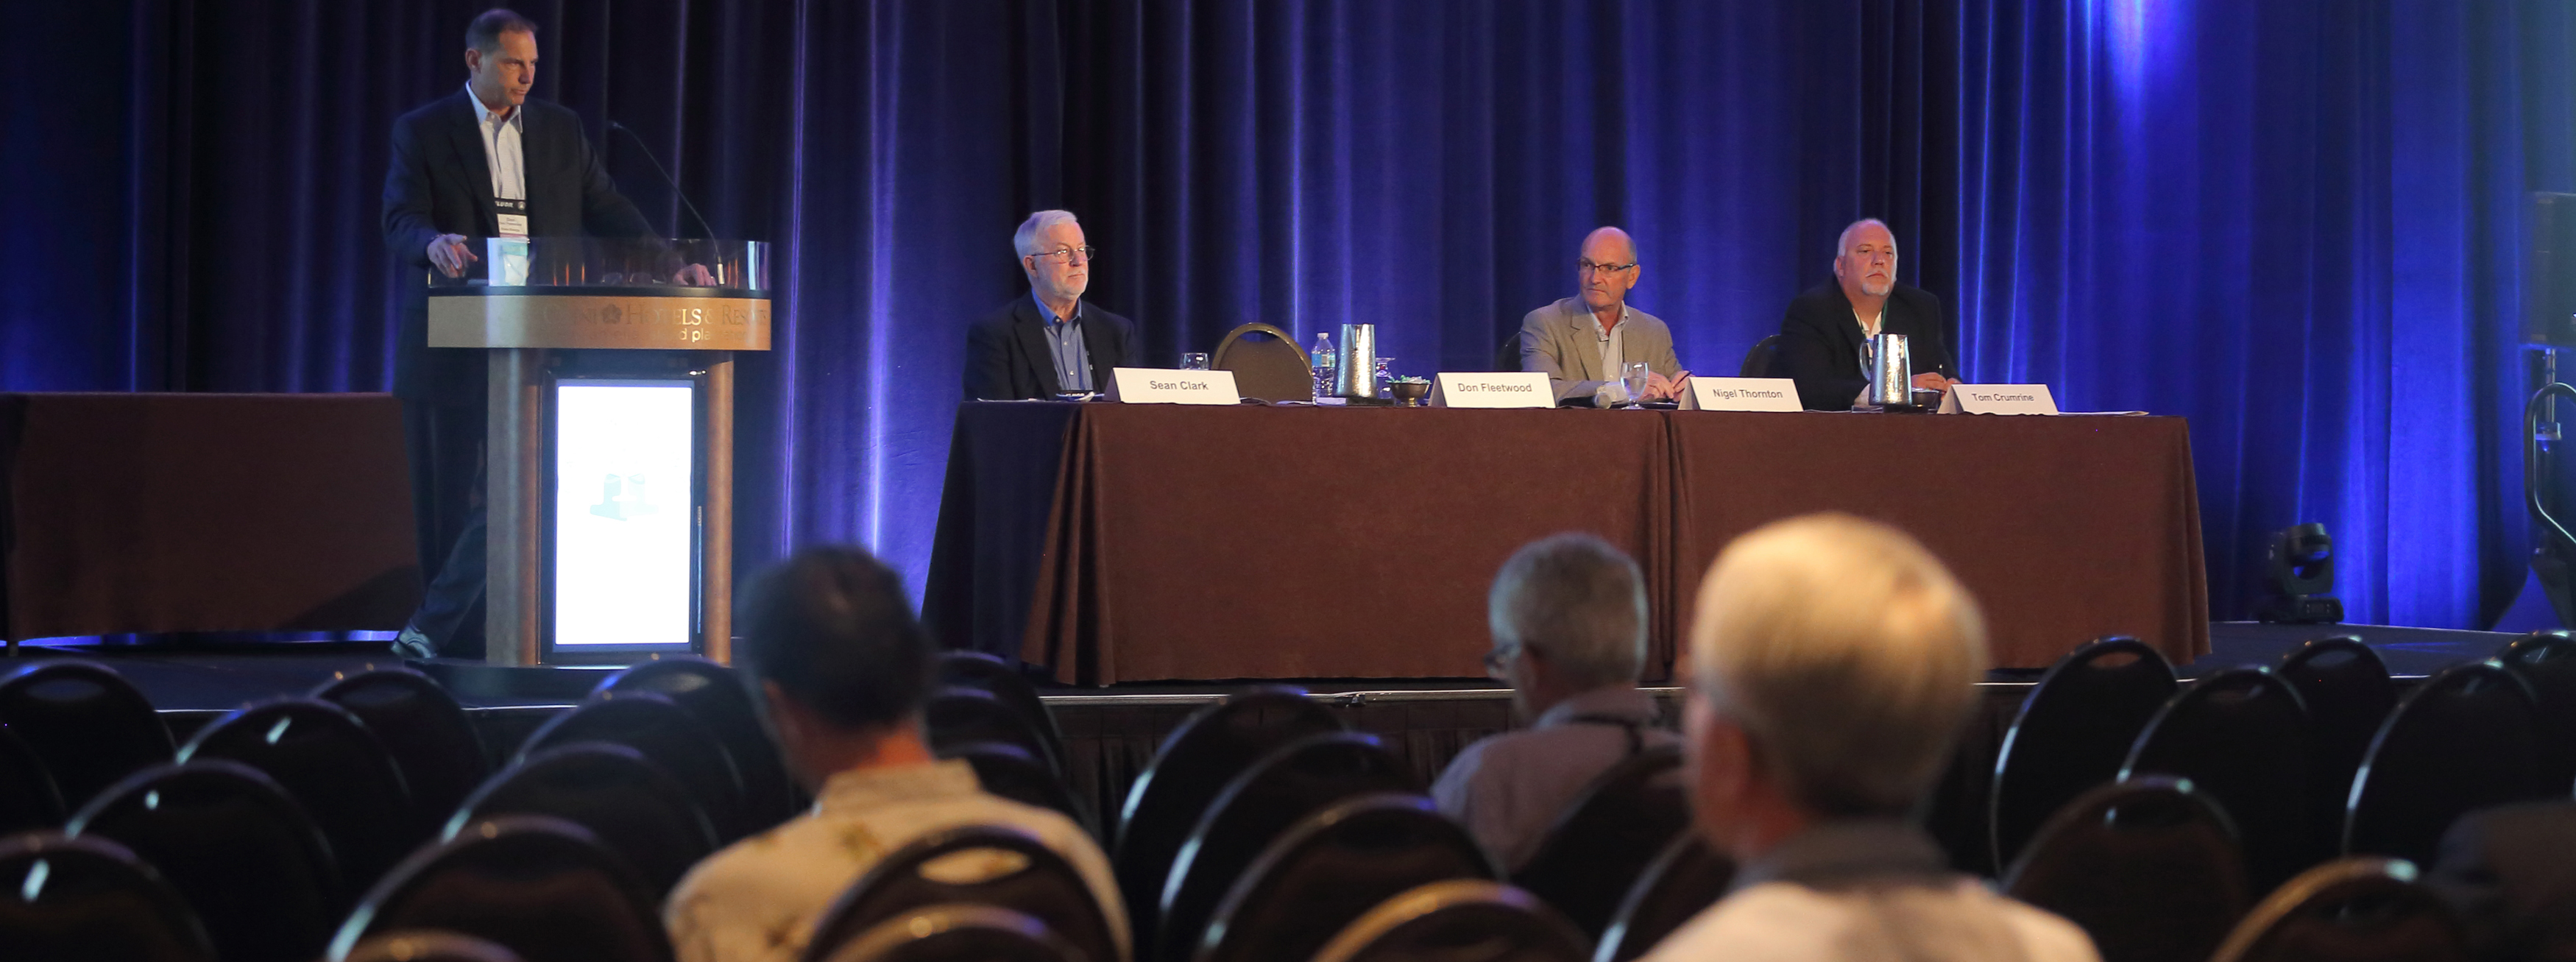 P1 presents at Utility Working Conference & Vendor Technology Expo held by ANS